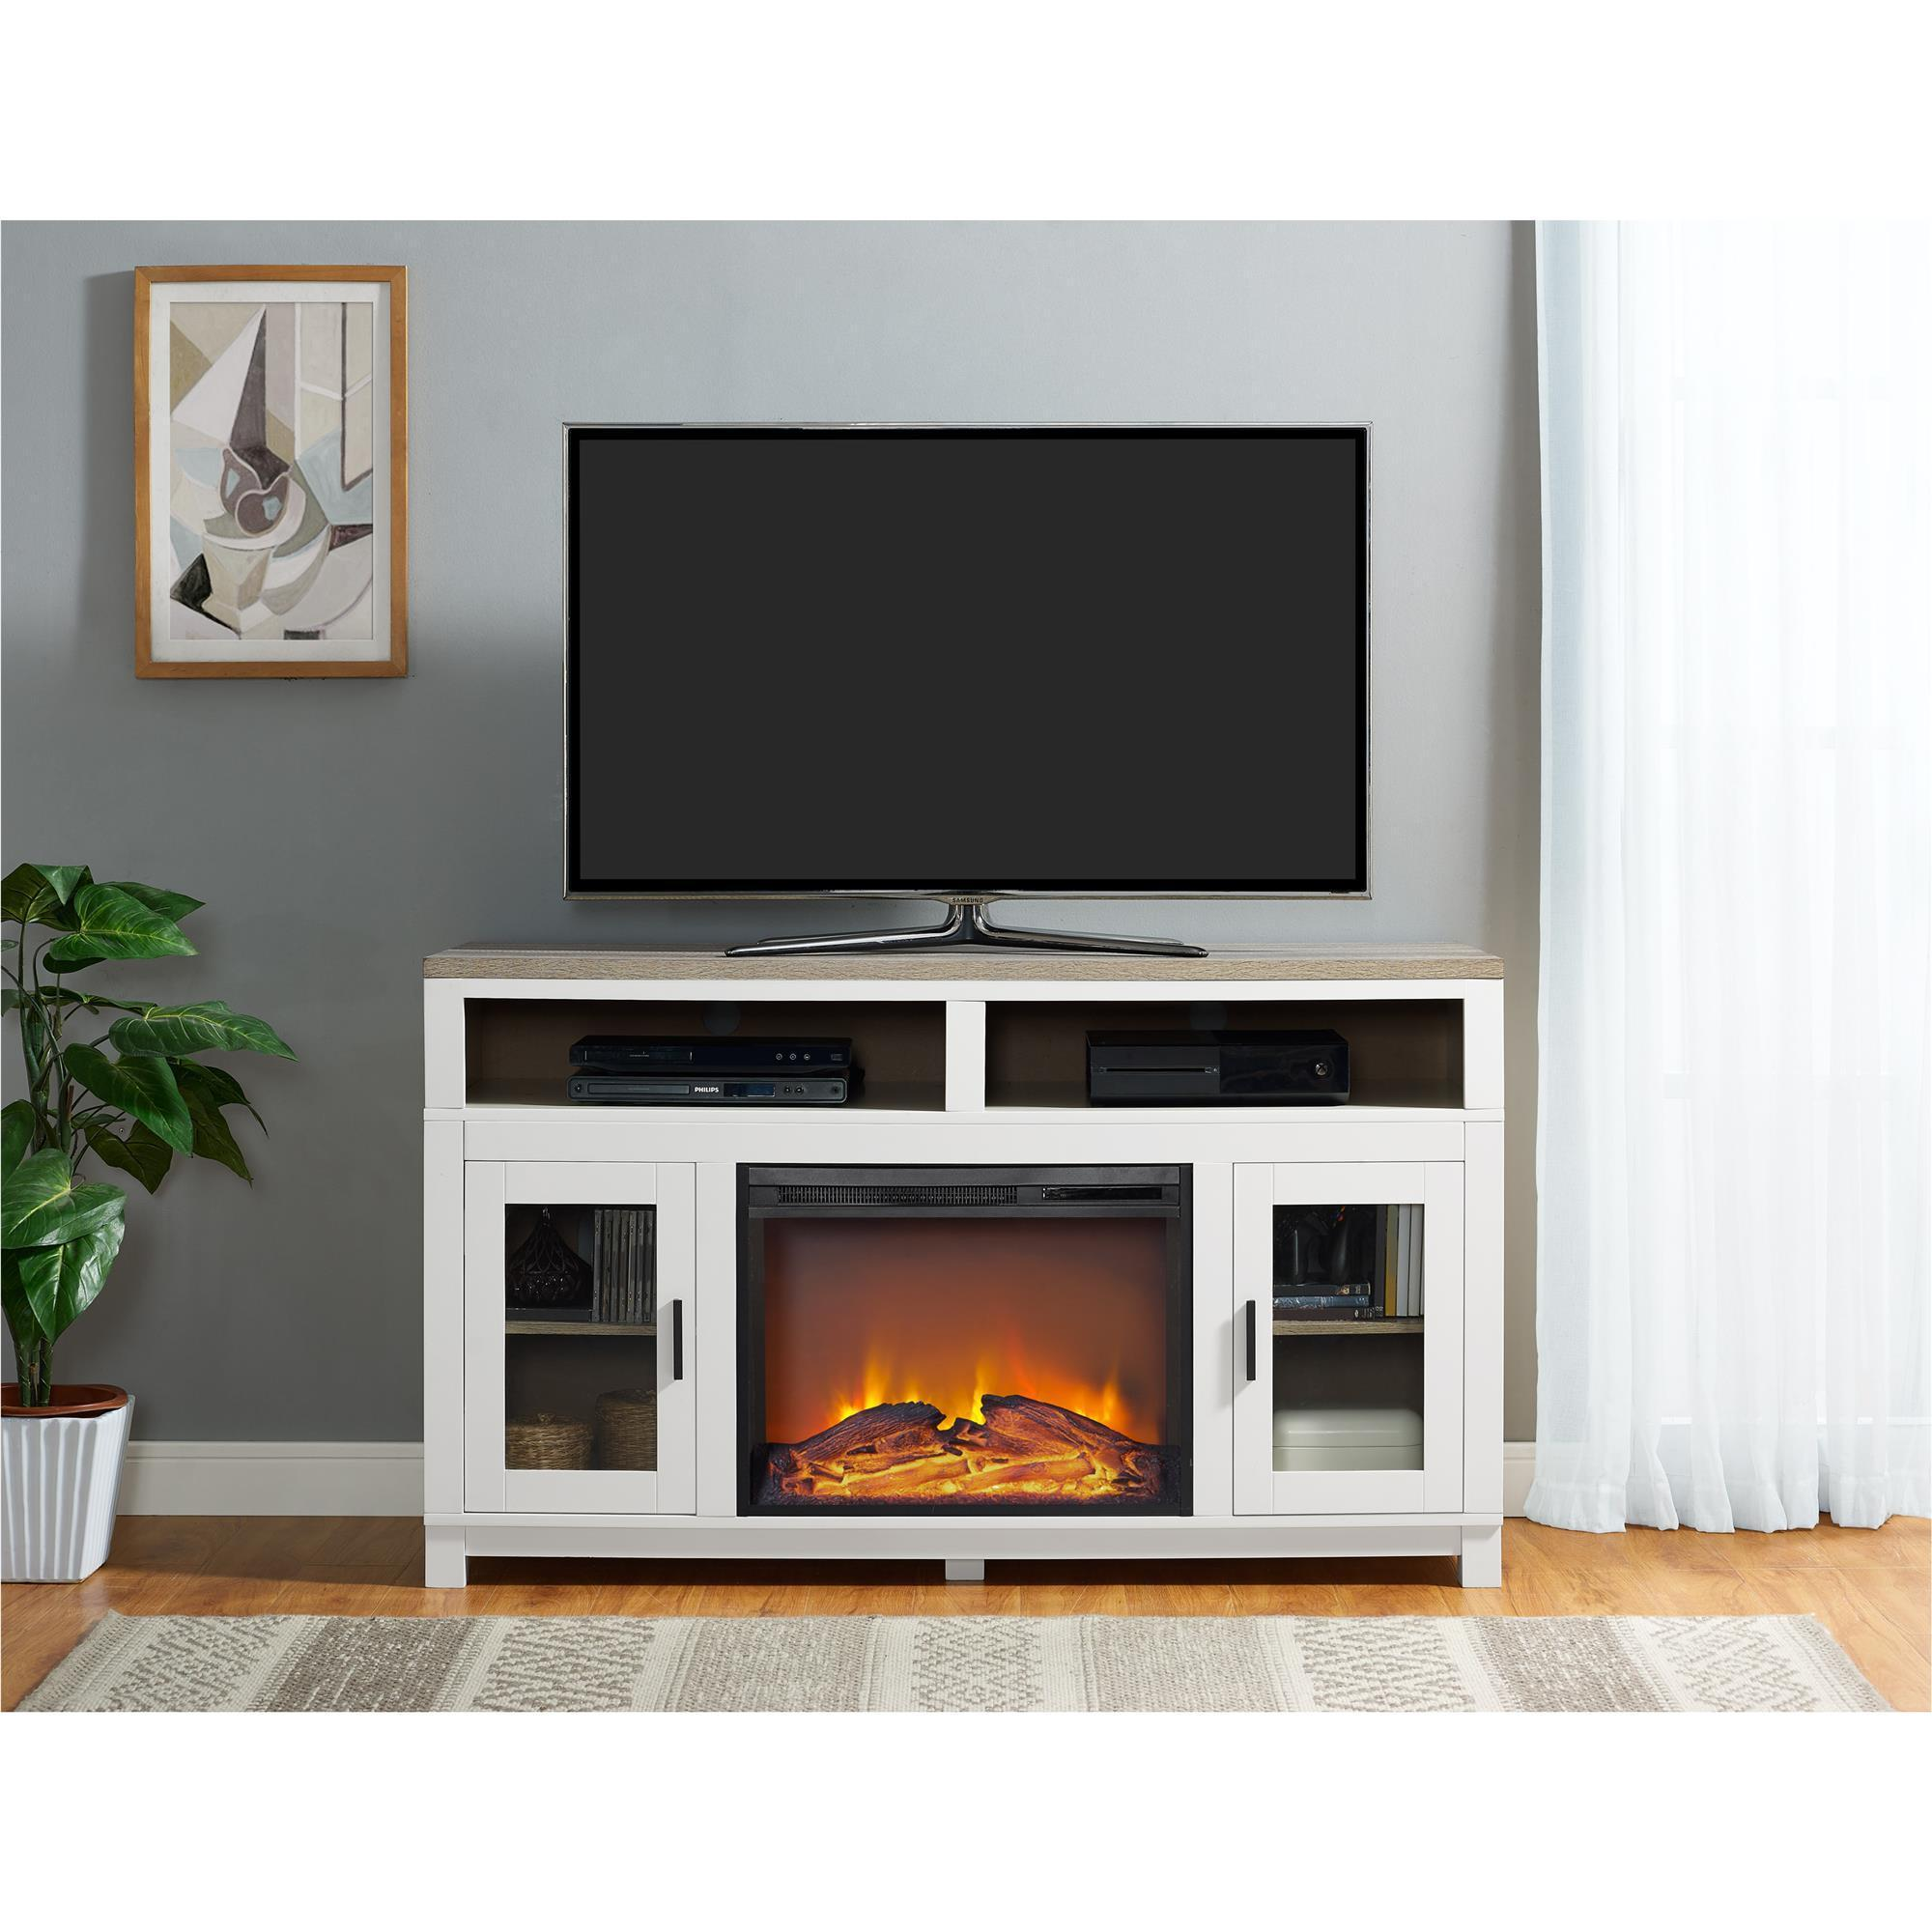 talking electric design home concept plasma cheap image a by place loft fireplace tv book of stand with